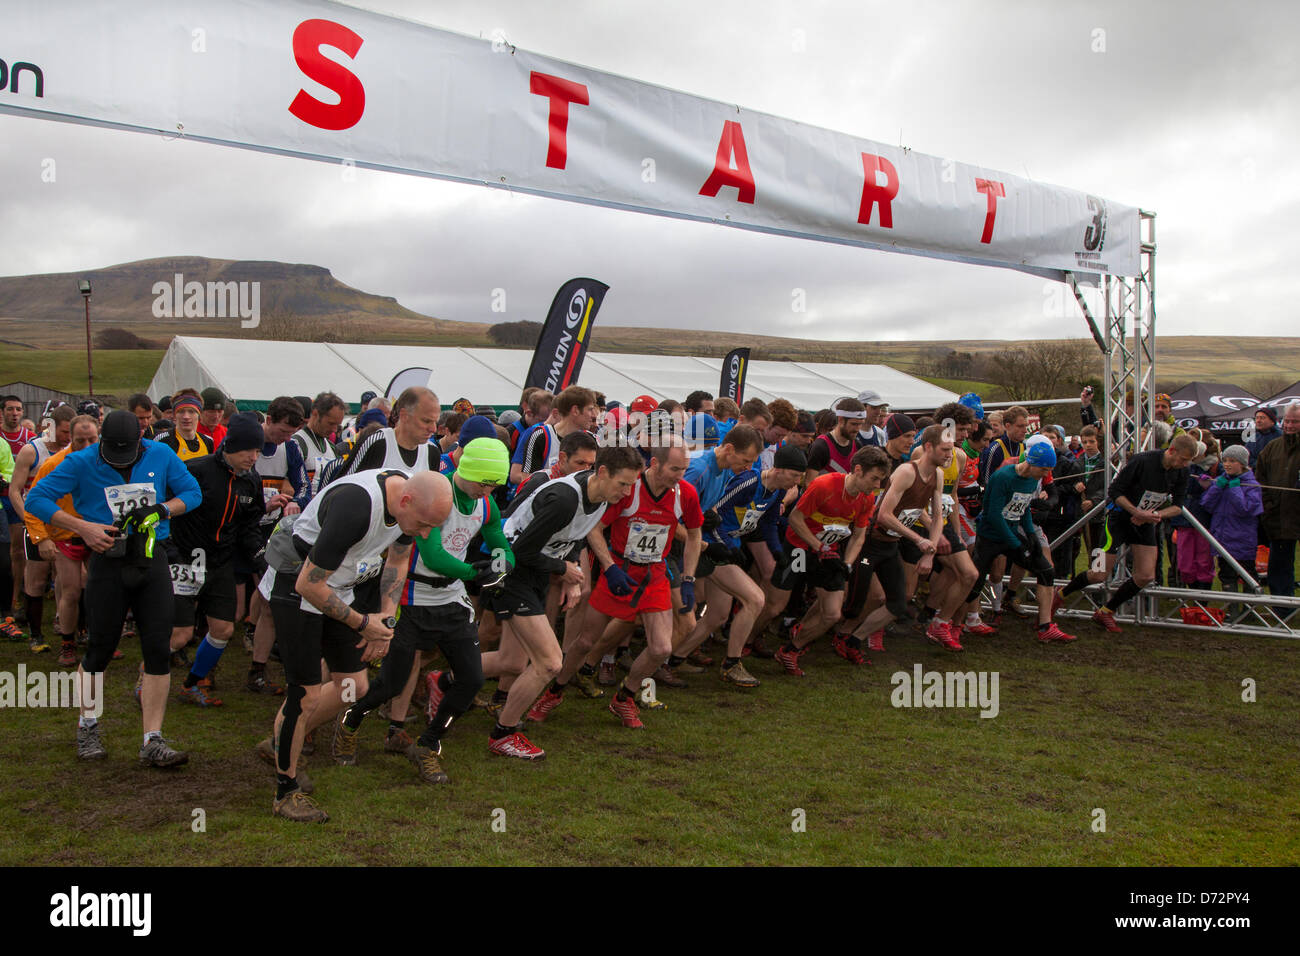 Yorkshire, UK. Saturday 27th April, 2013. The start of the Yorkshire Three Peaks Challenge.   The 59th Annual 3 - Stock Image